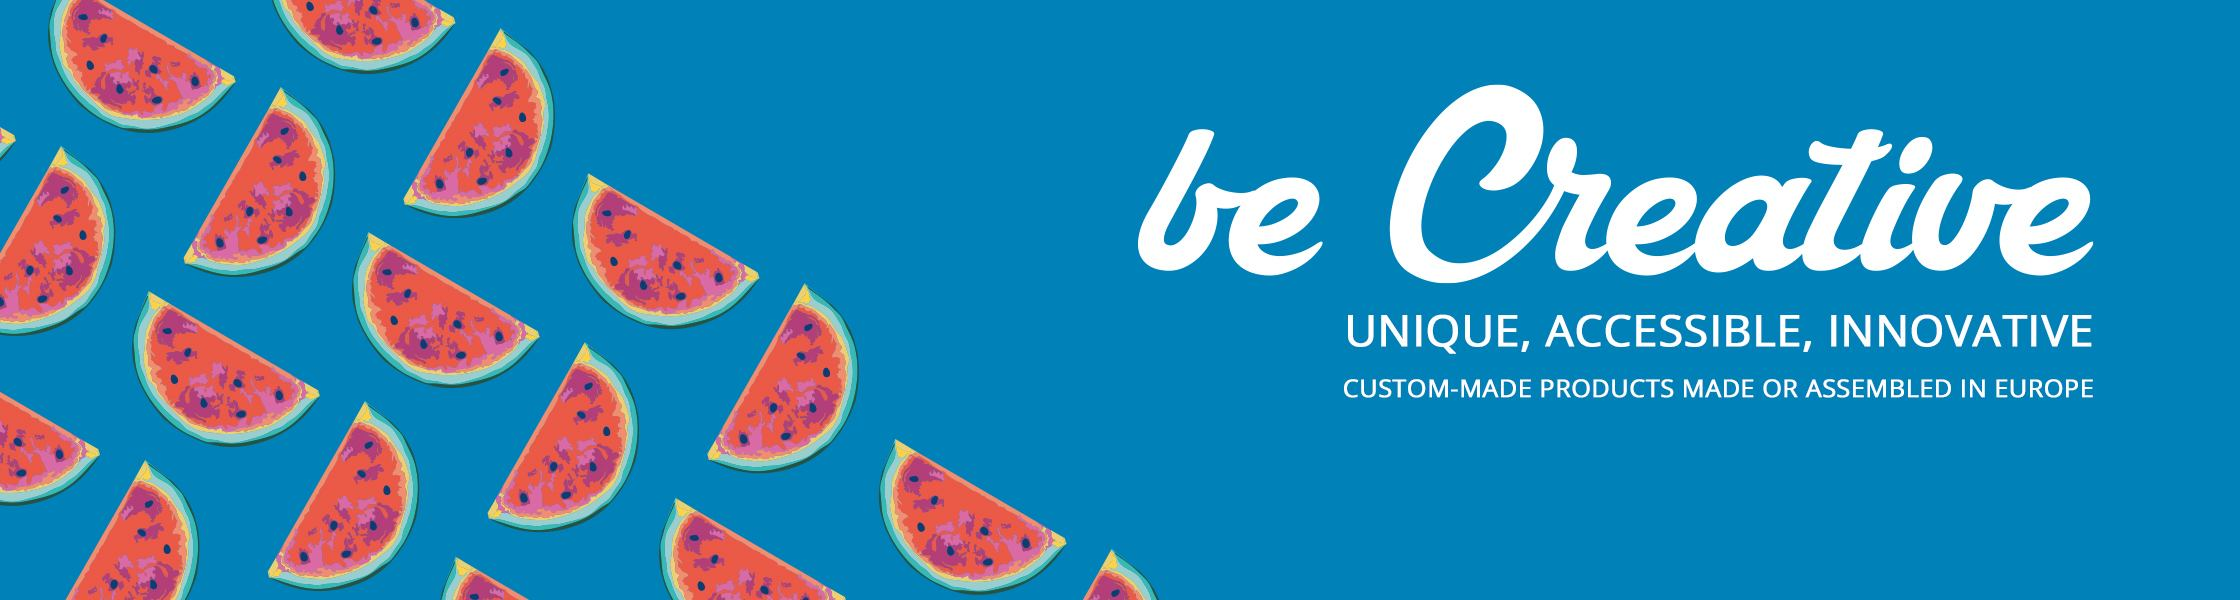 Our new wildly unique BE CREATIVE 2021 e-catalogue has arrived!